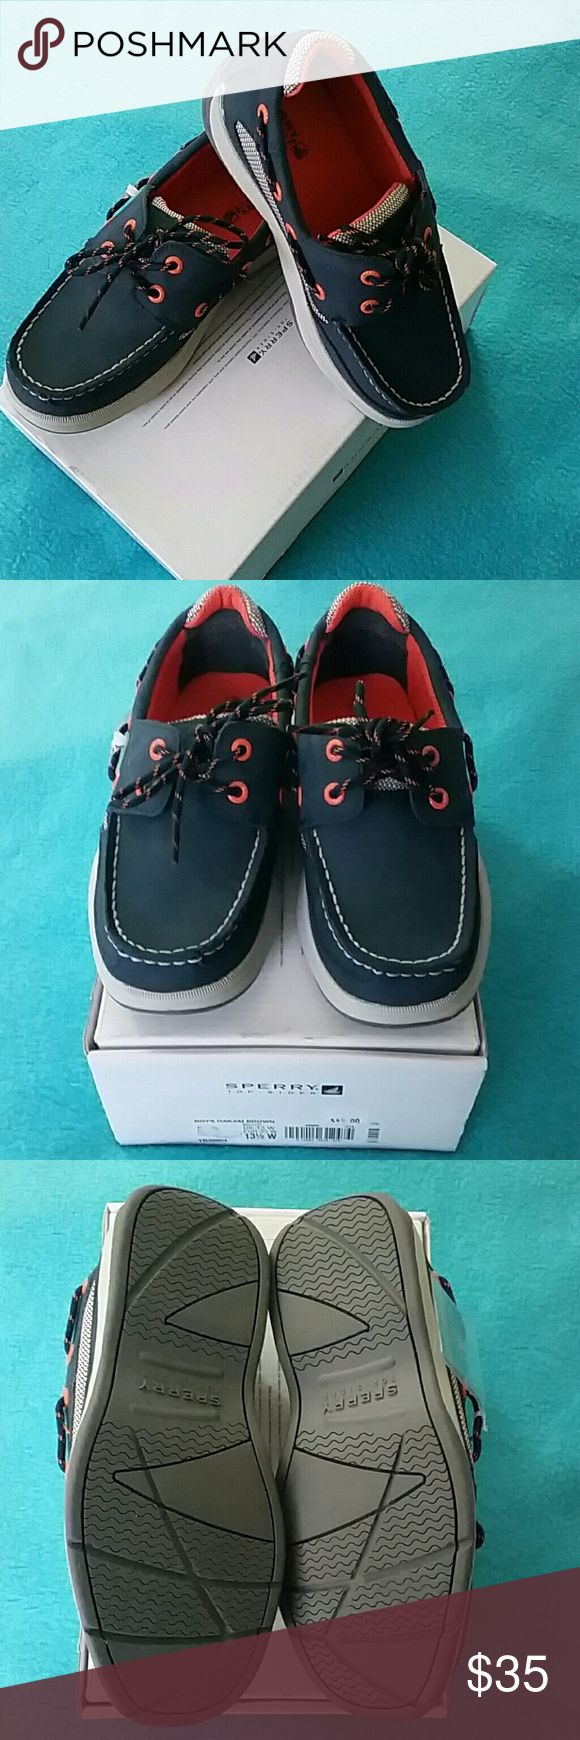 SPERRY Top Sider Shoes Size: 13.5M. NWT in the box. Sperry Shoes Dress Shoes